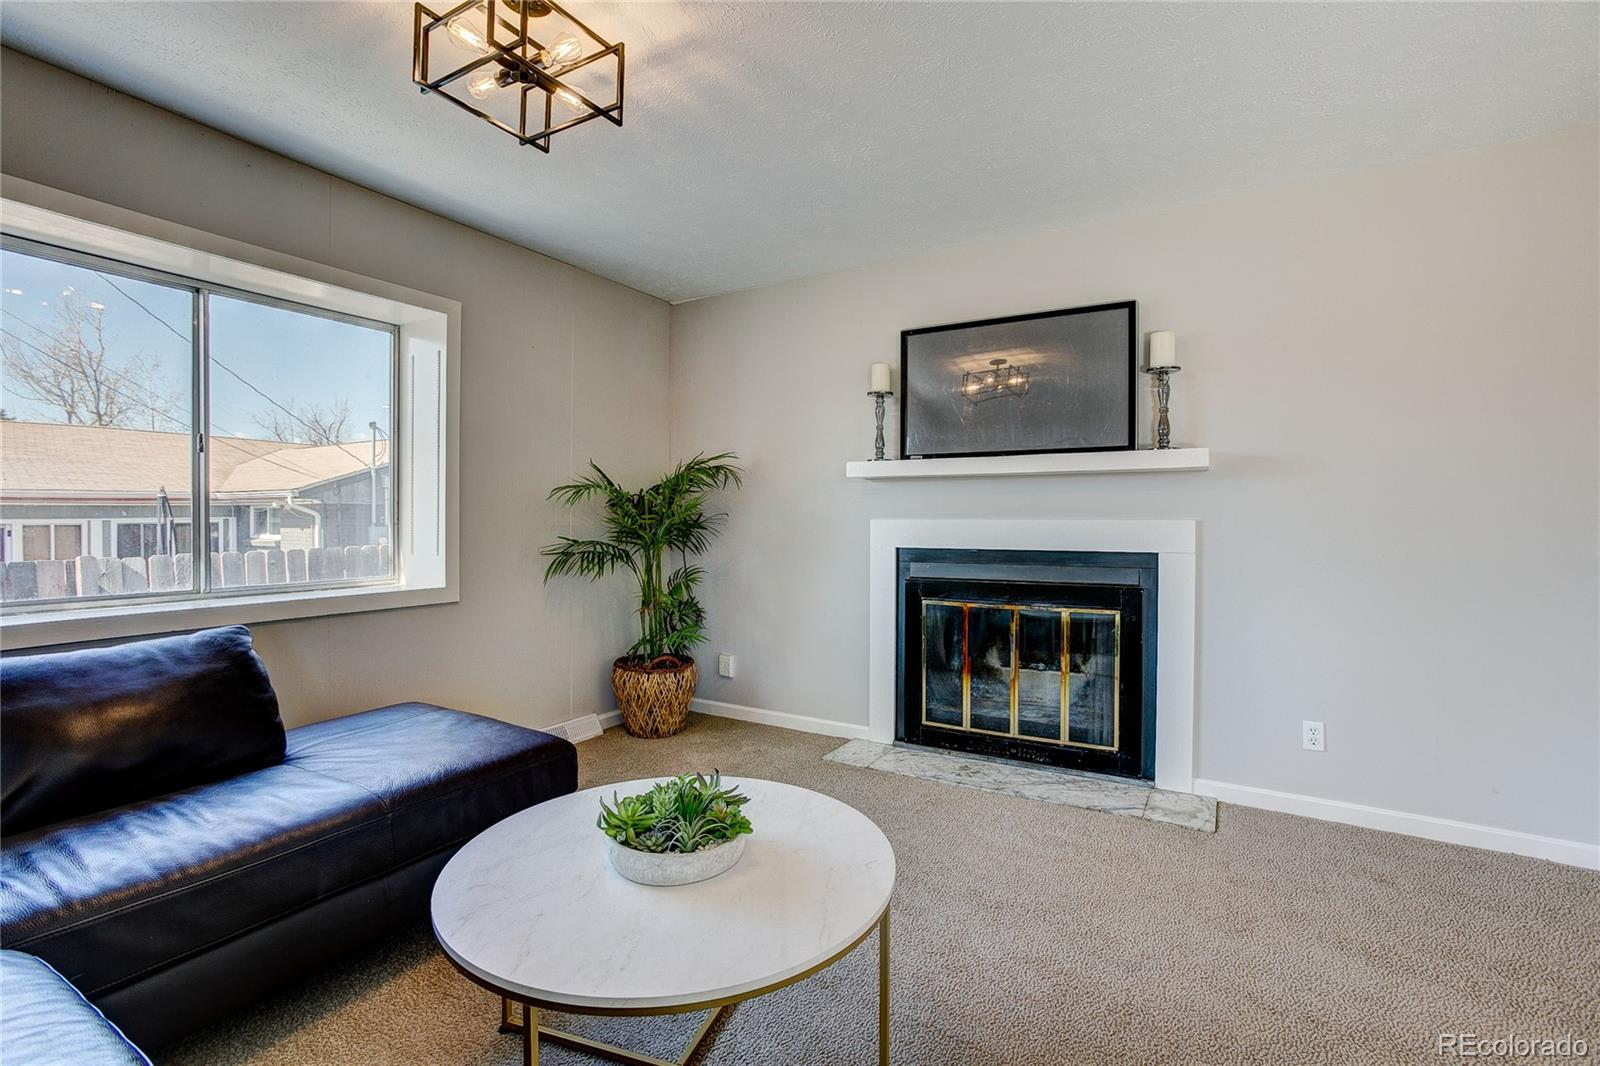 MLS# 9710462 - 13 - 1250 W 7th Ave Dr, Broomfield, CO 80020